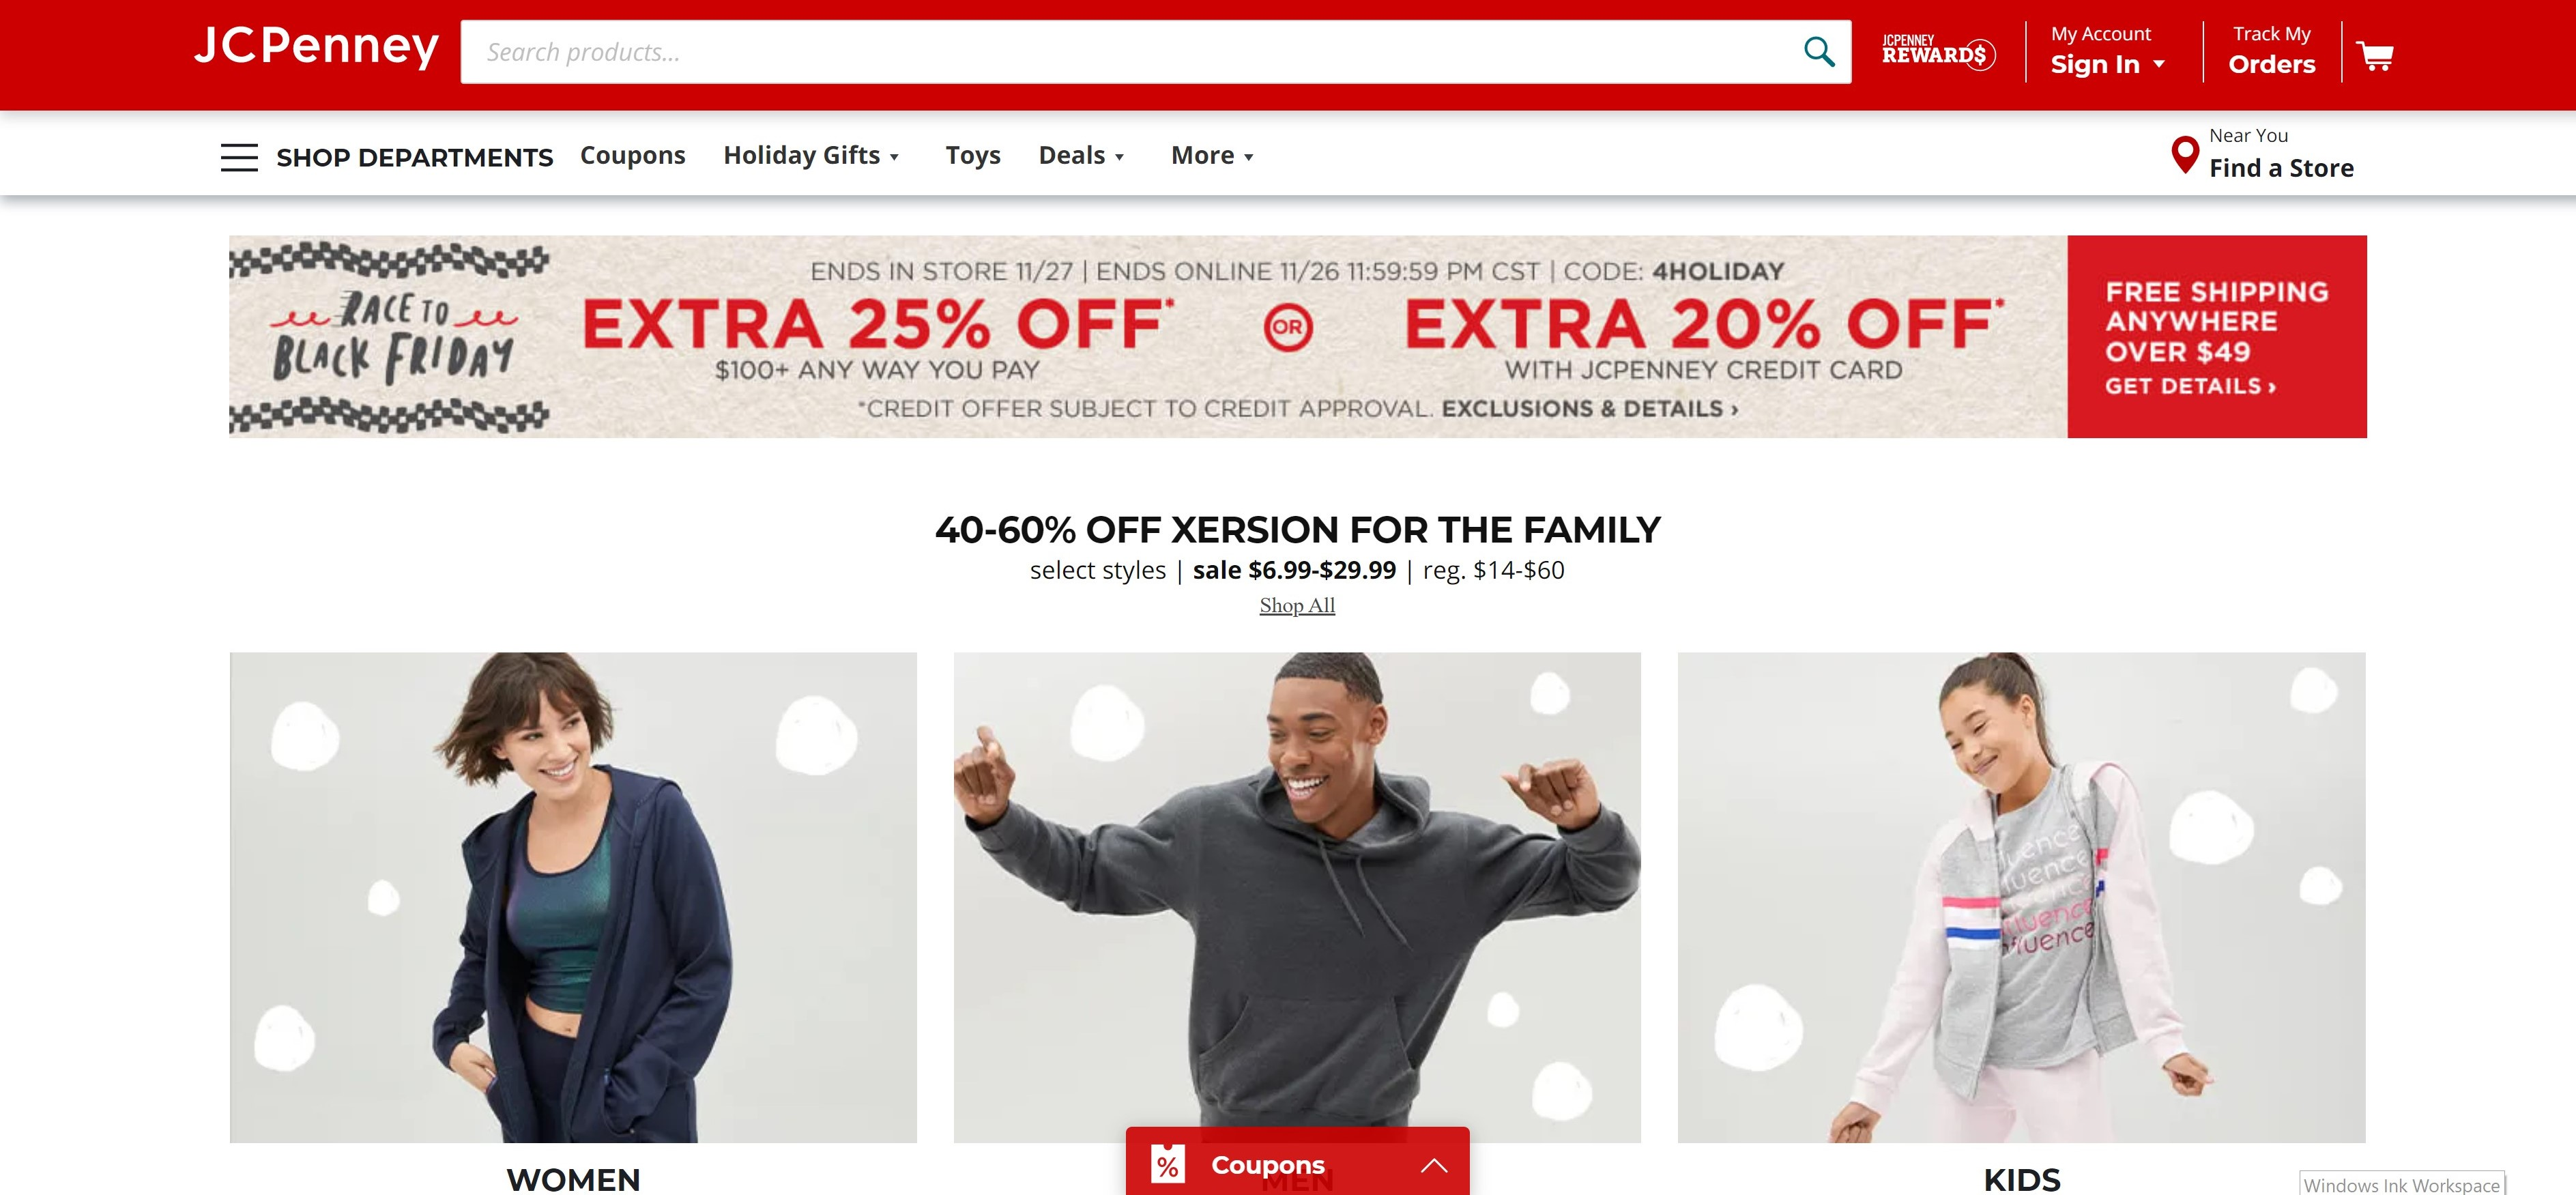 JC Penney Website (Nov 2019)